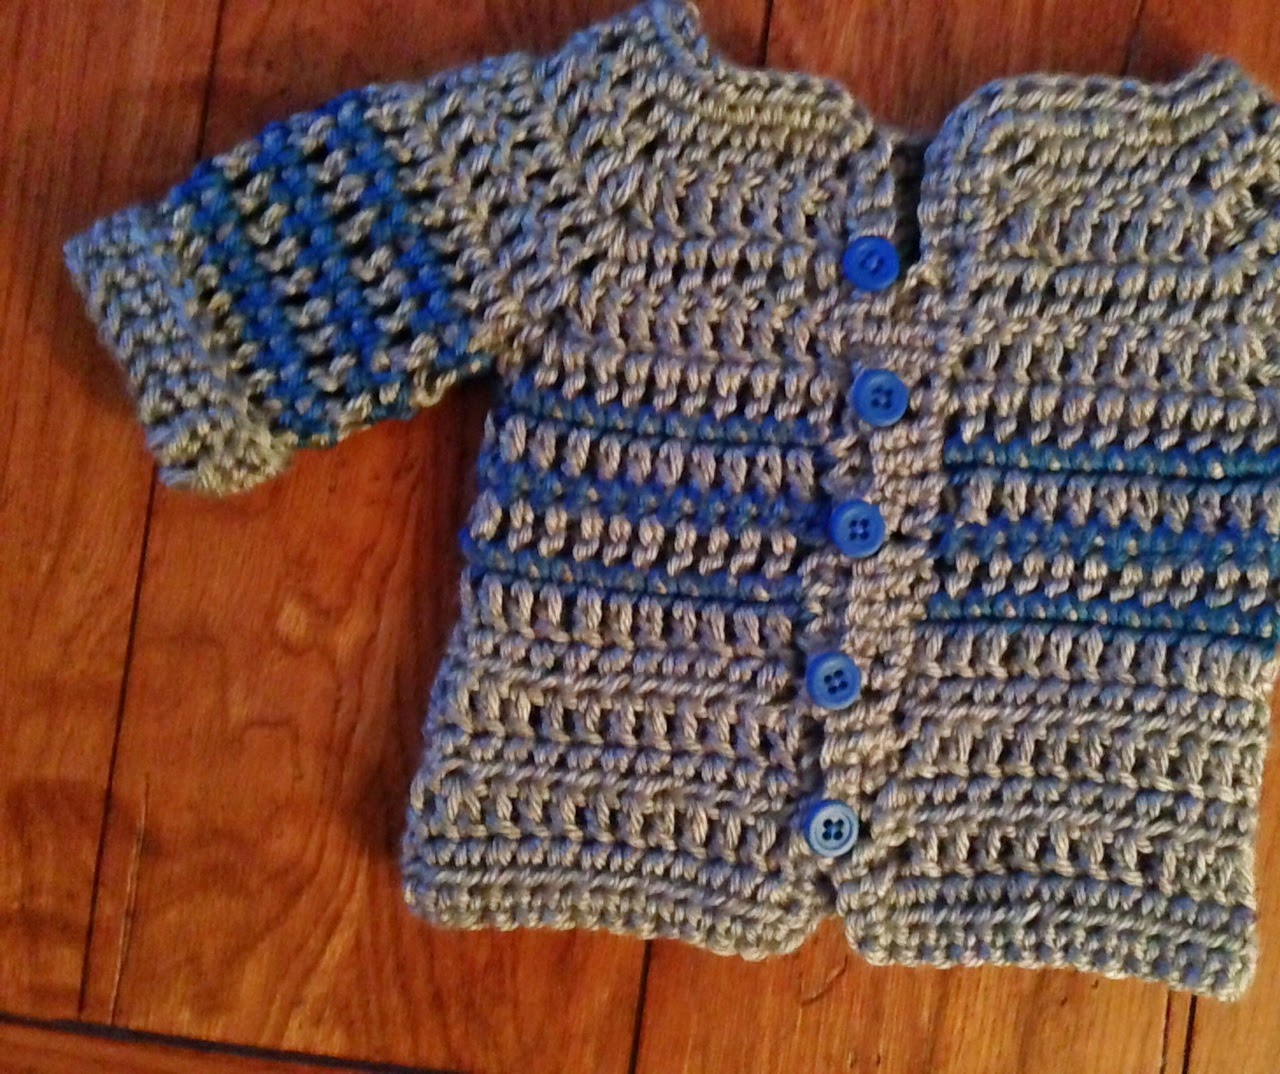 Easy Crochet Baby Sweater Pattern Free : Craft Brag: Crochet Baby Boy Sweater Pattern - Free